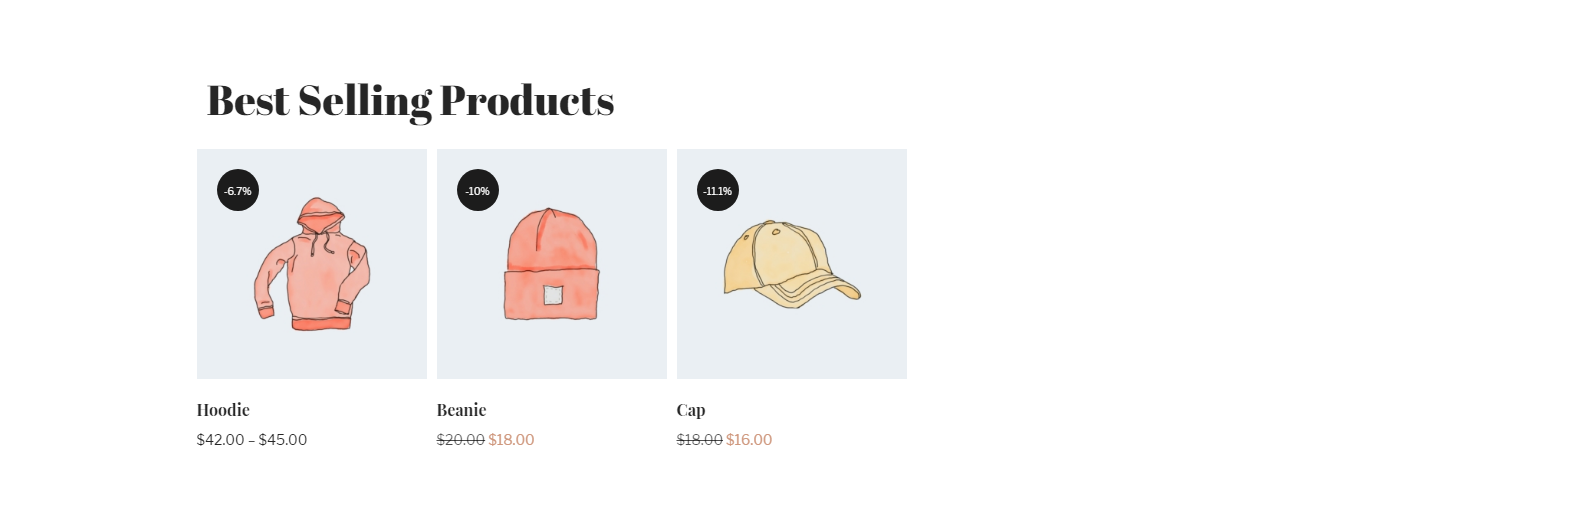 WooCommerce Best Selling Products in carousel view